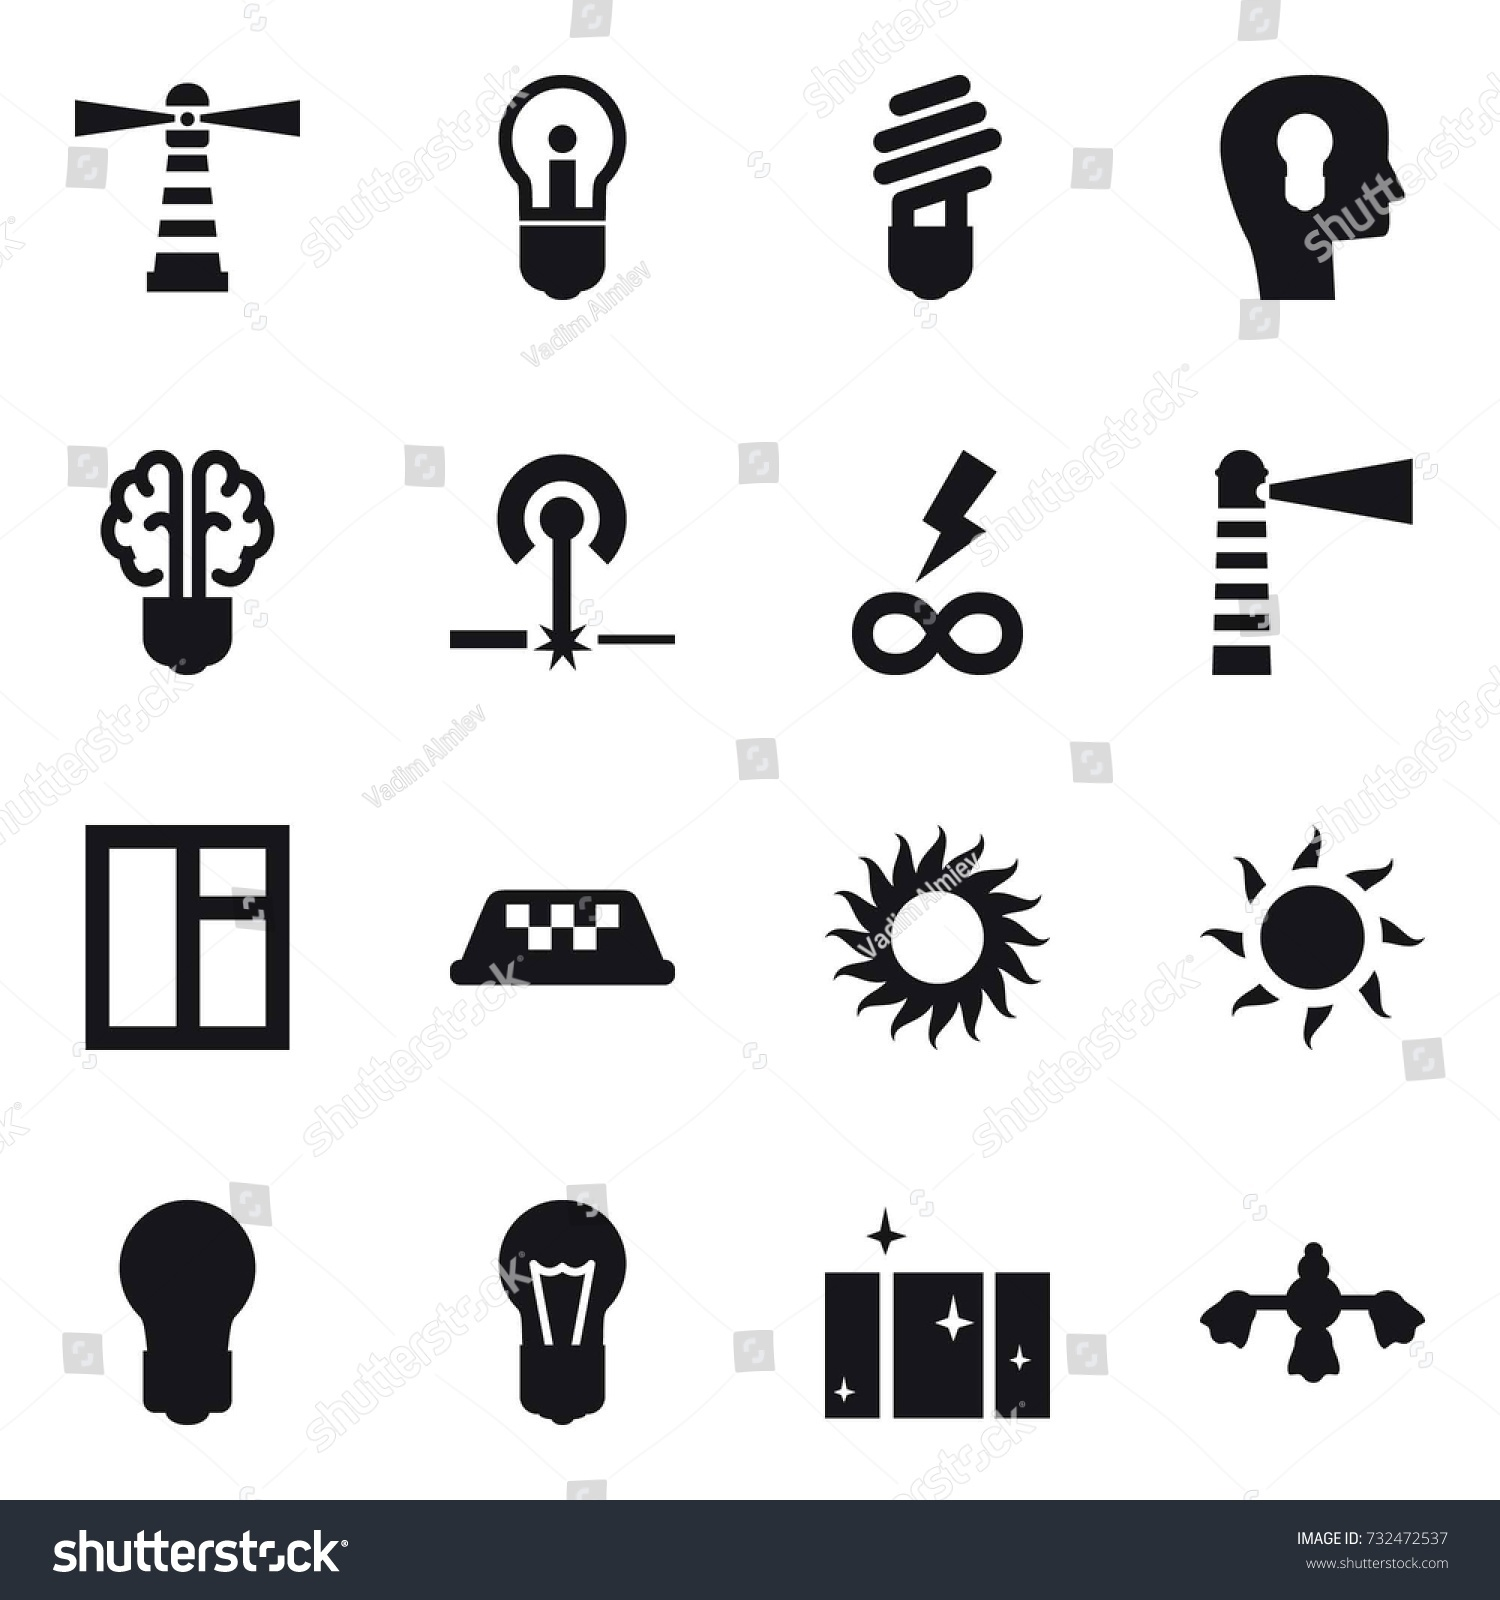 16 Vector Icon Set Lighthouse Bulb Stock Vector 732472537 - Shutterstock for Power Window Symbol  156eri